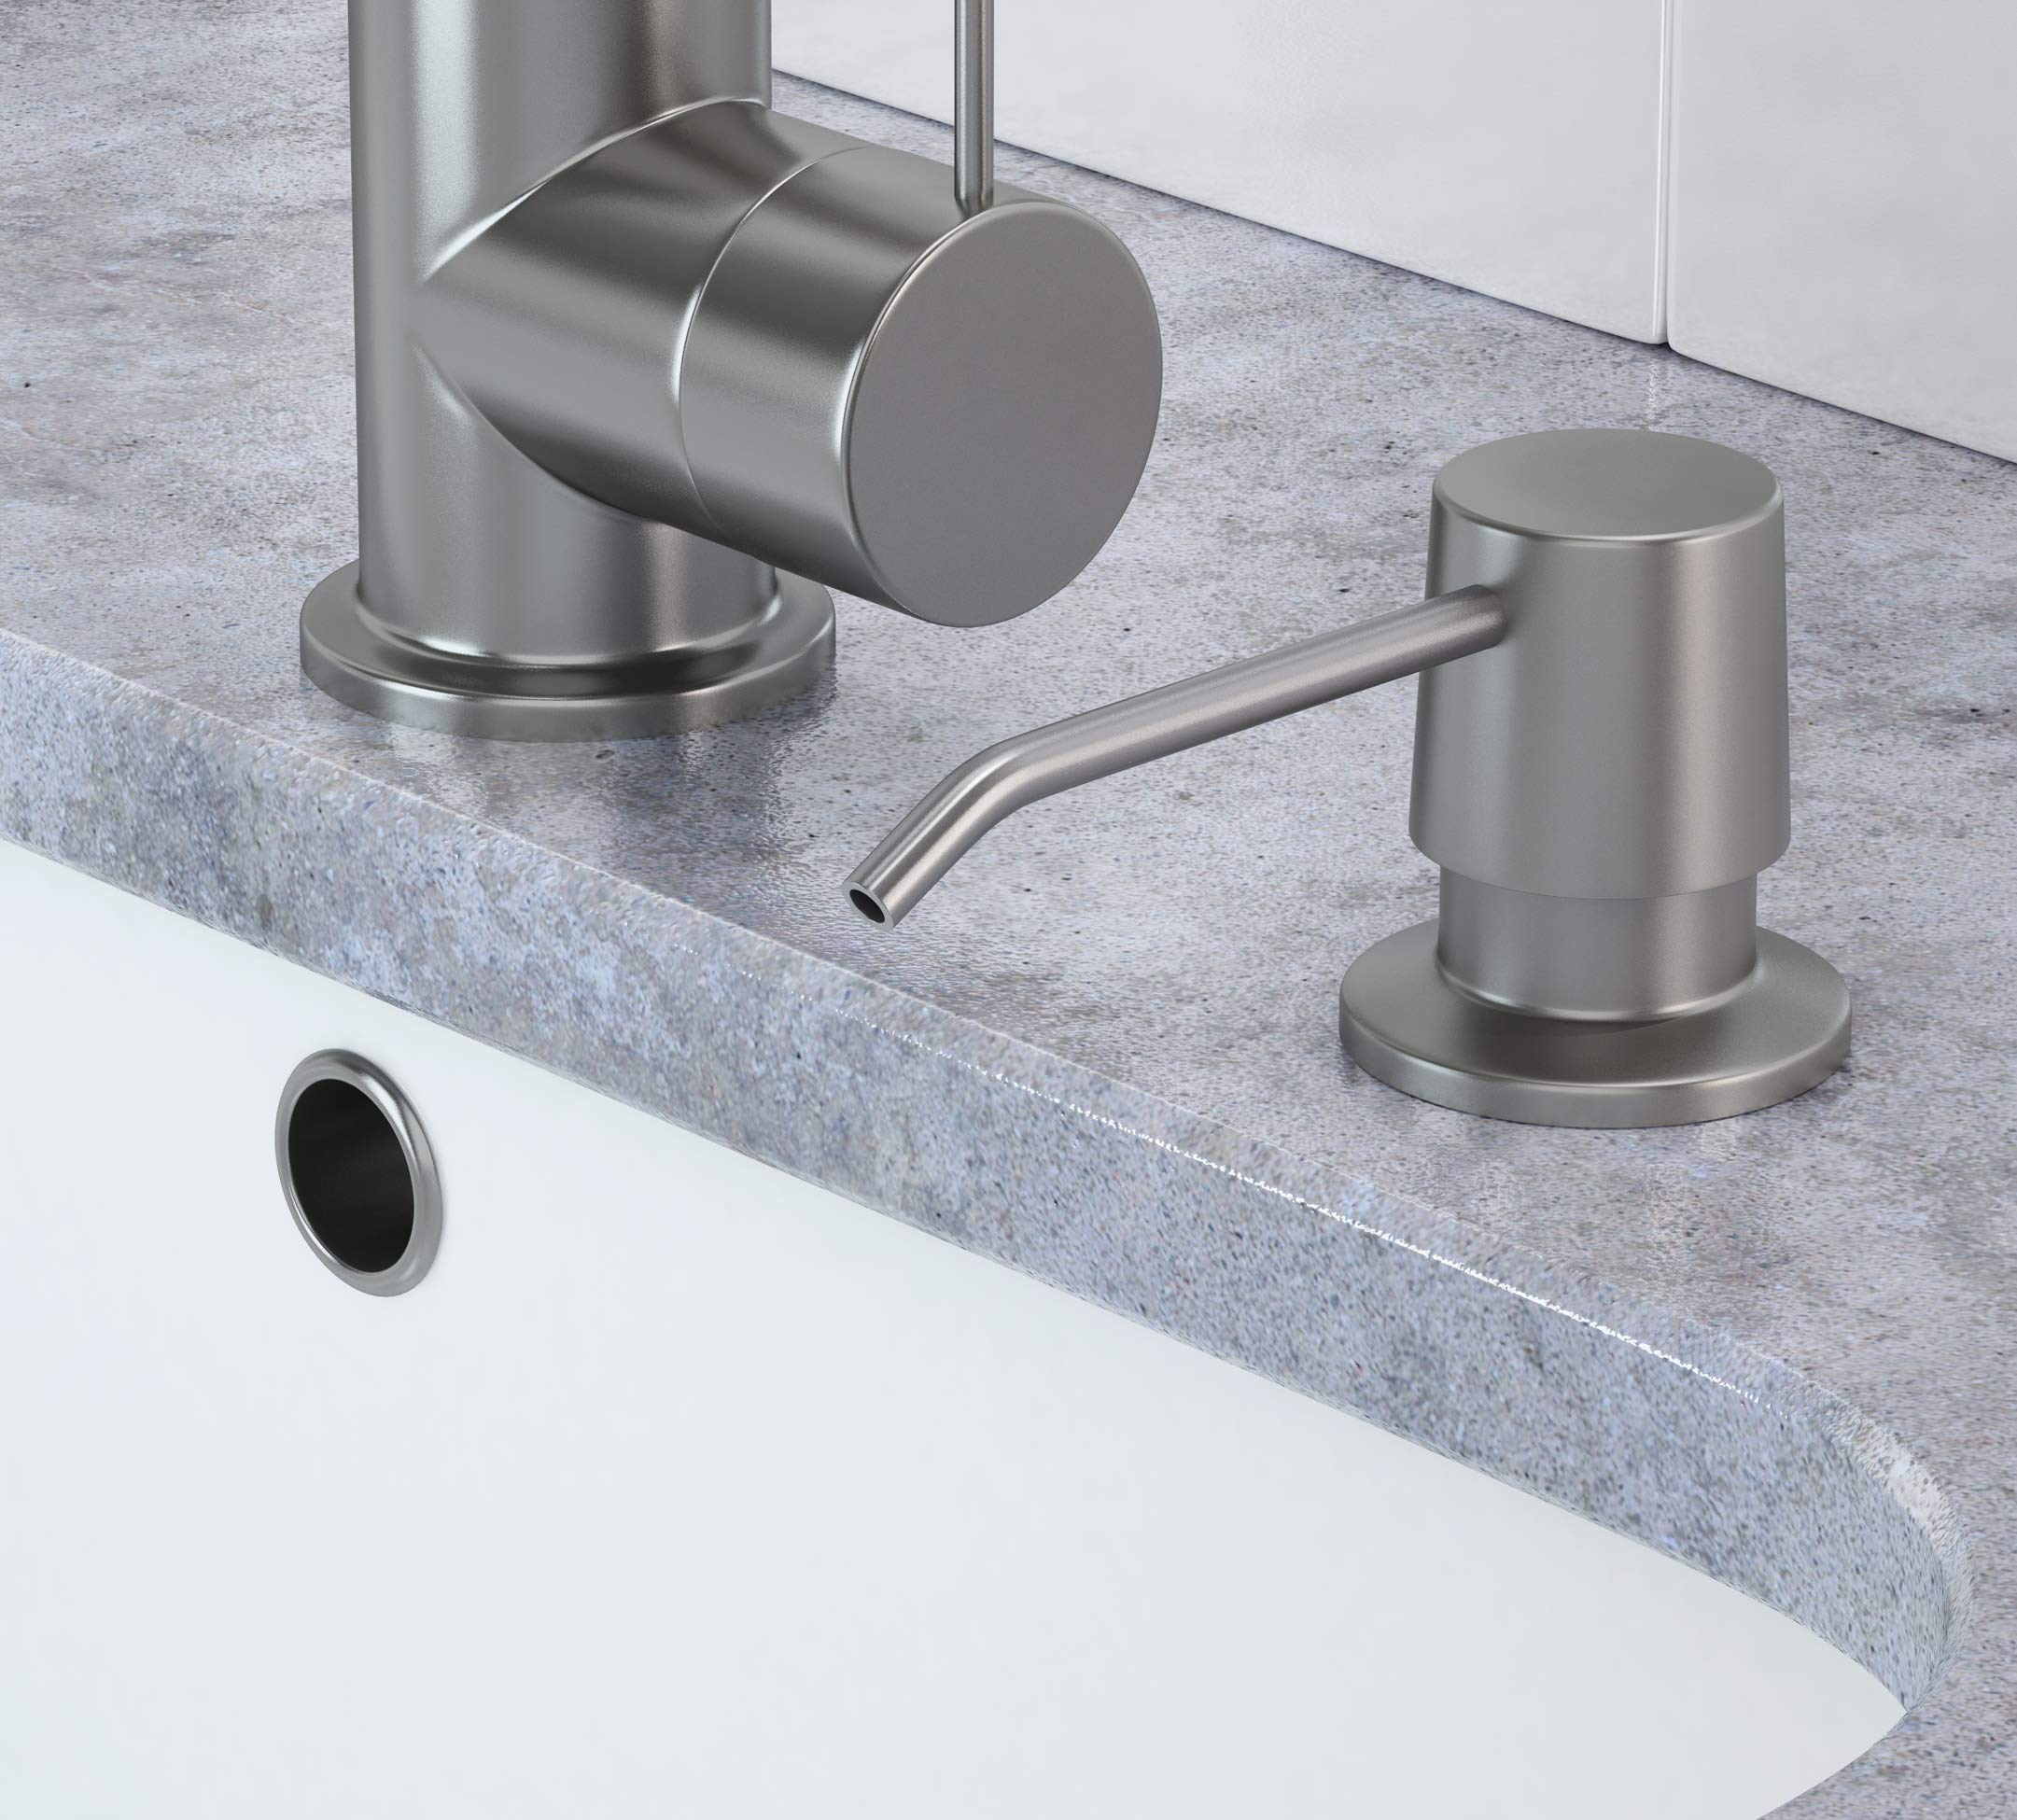 Besser Products Soap Dispenser for Kitchen Sink and Tube Kit - Made of Complete Brass and Stainless Steel Finish, 36'' Tube Connects Directly To Soap Bottle, No More Messy Refills by Besser Products (Image #3)